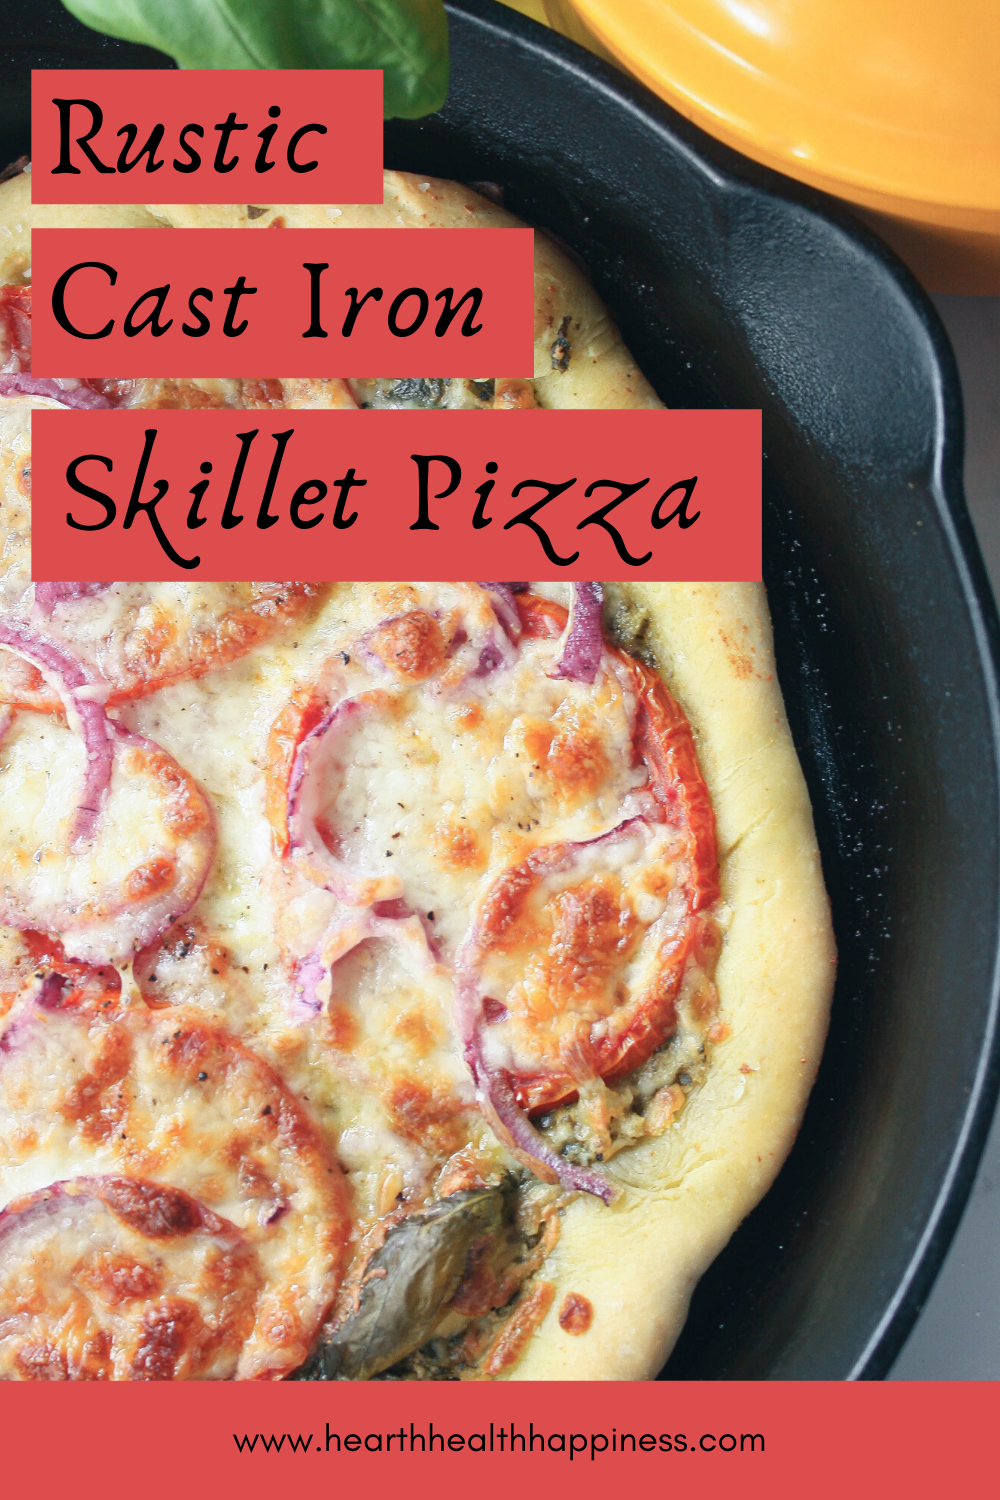 Pinterest Pin of pizza baked in cast iron skillet   hearth health happiness